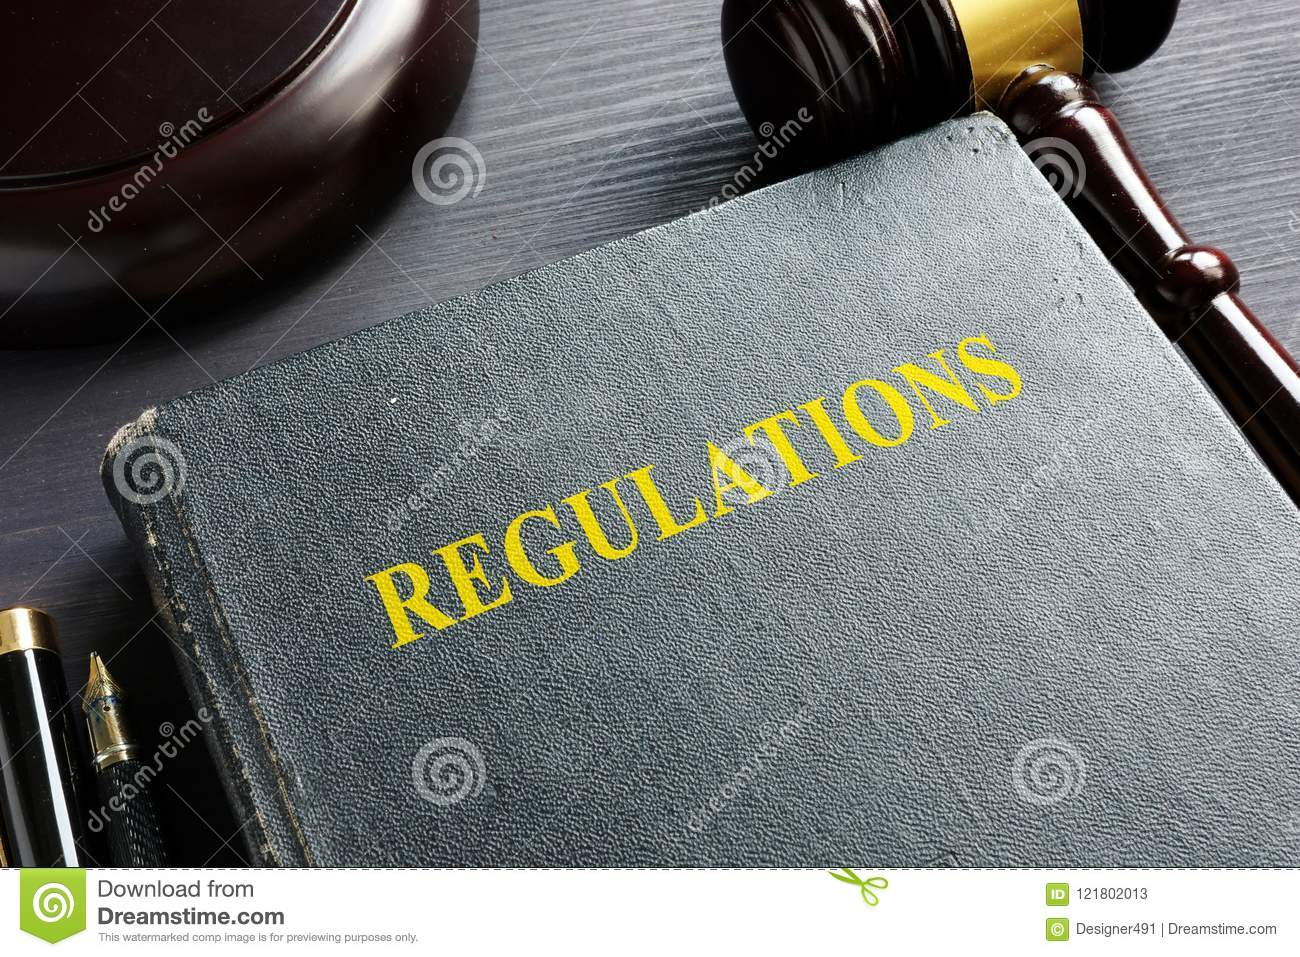 Regulations book and gavel. Law concept.